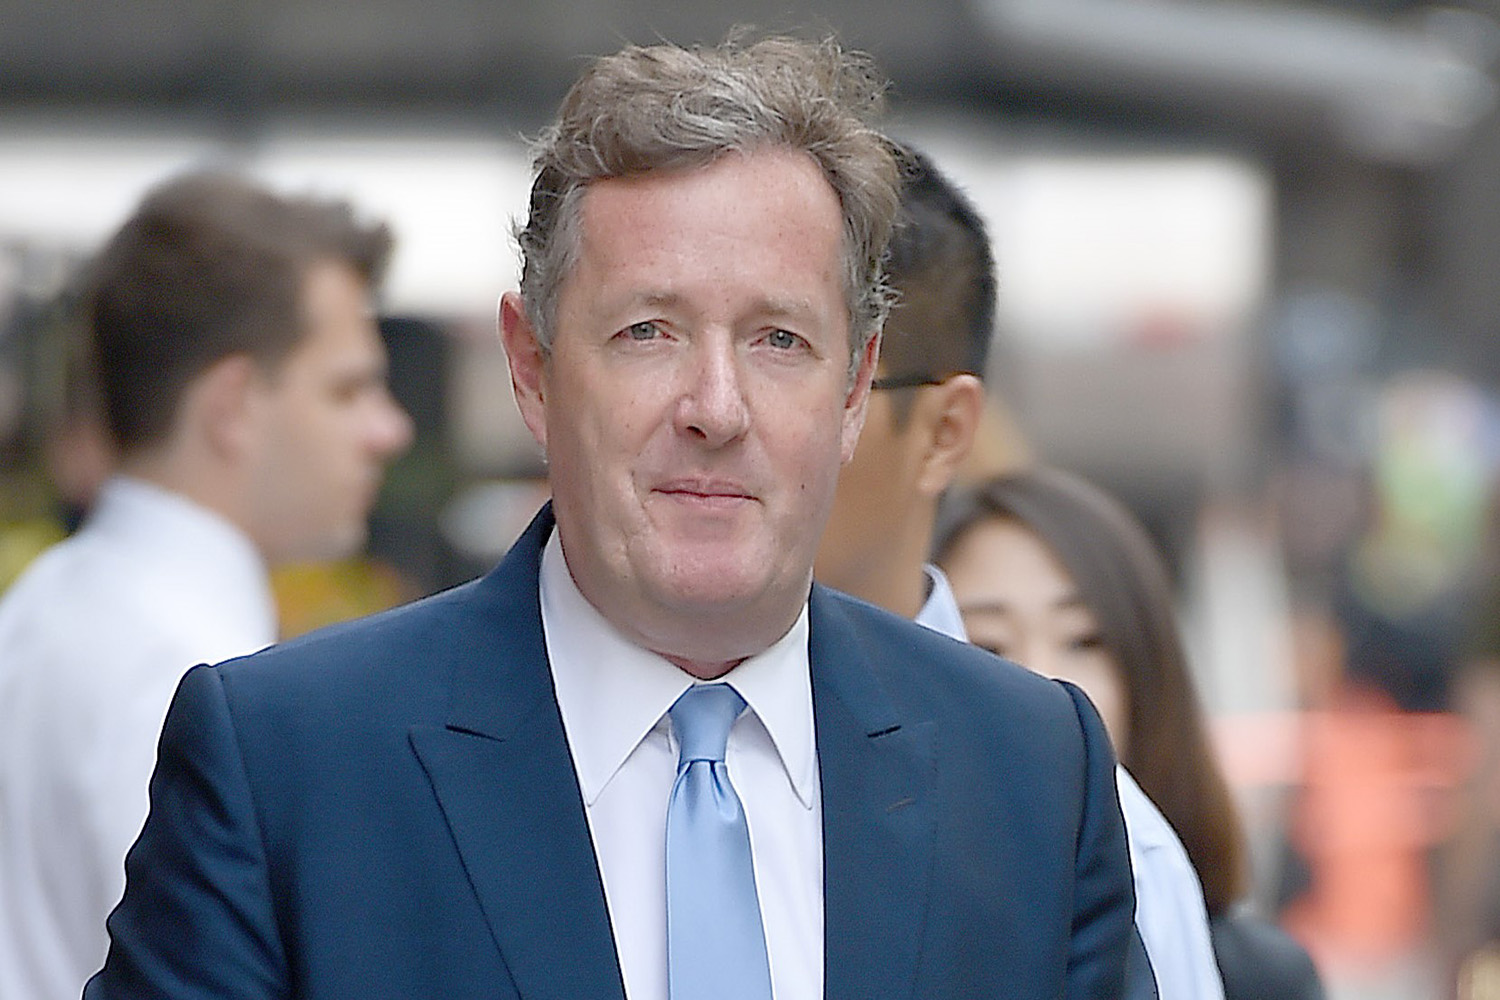 Piers Morgan hits back at criticism over coronavirus test